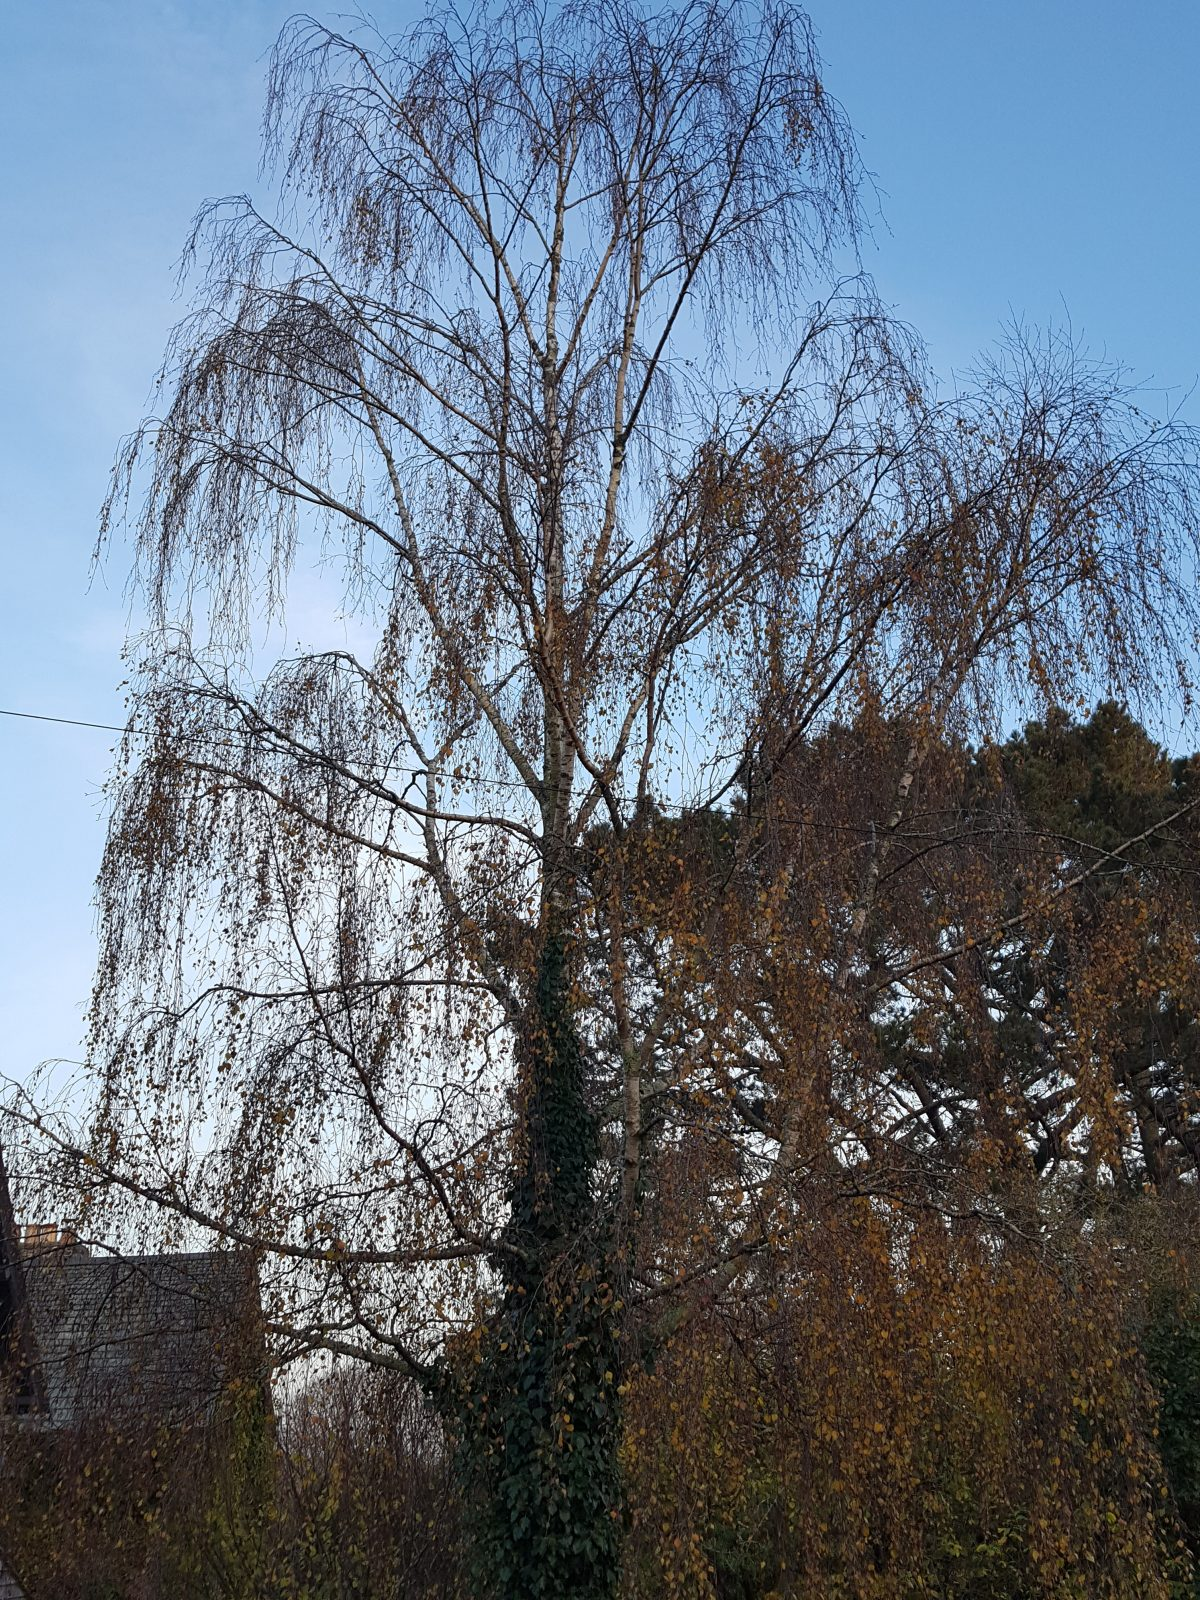 Foraging for silver birch (Betula pendula) Betulaceae family